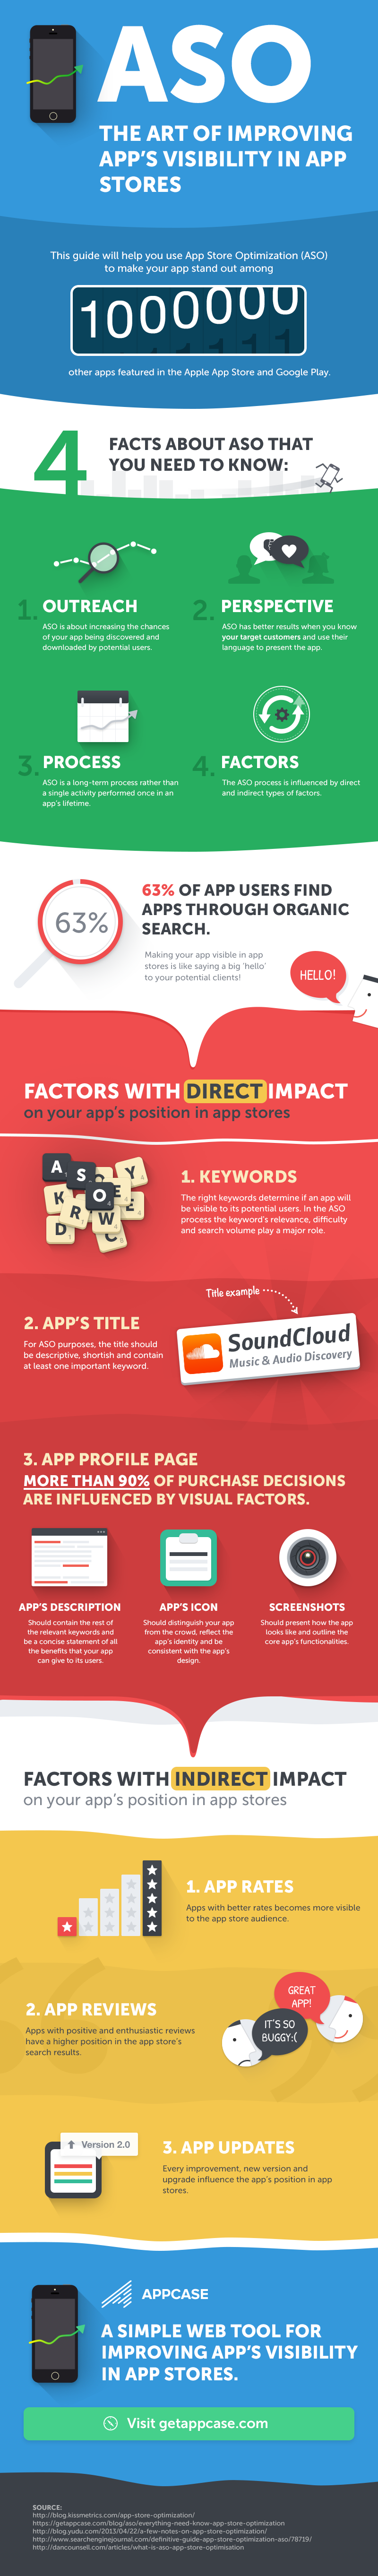 App-Marketing-Tips